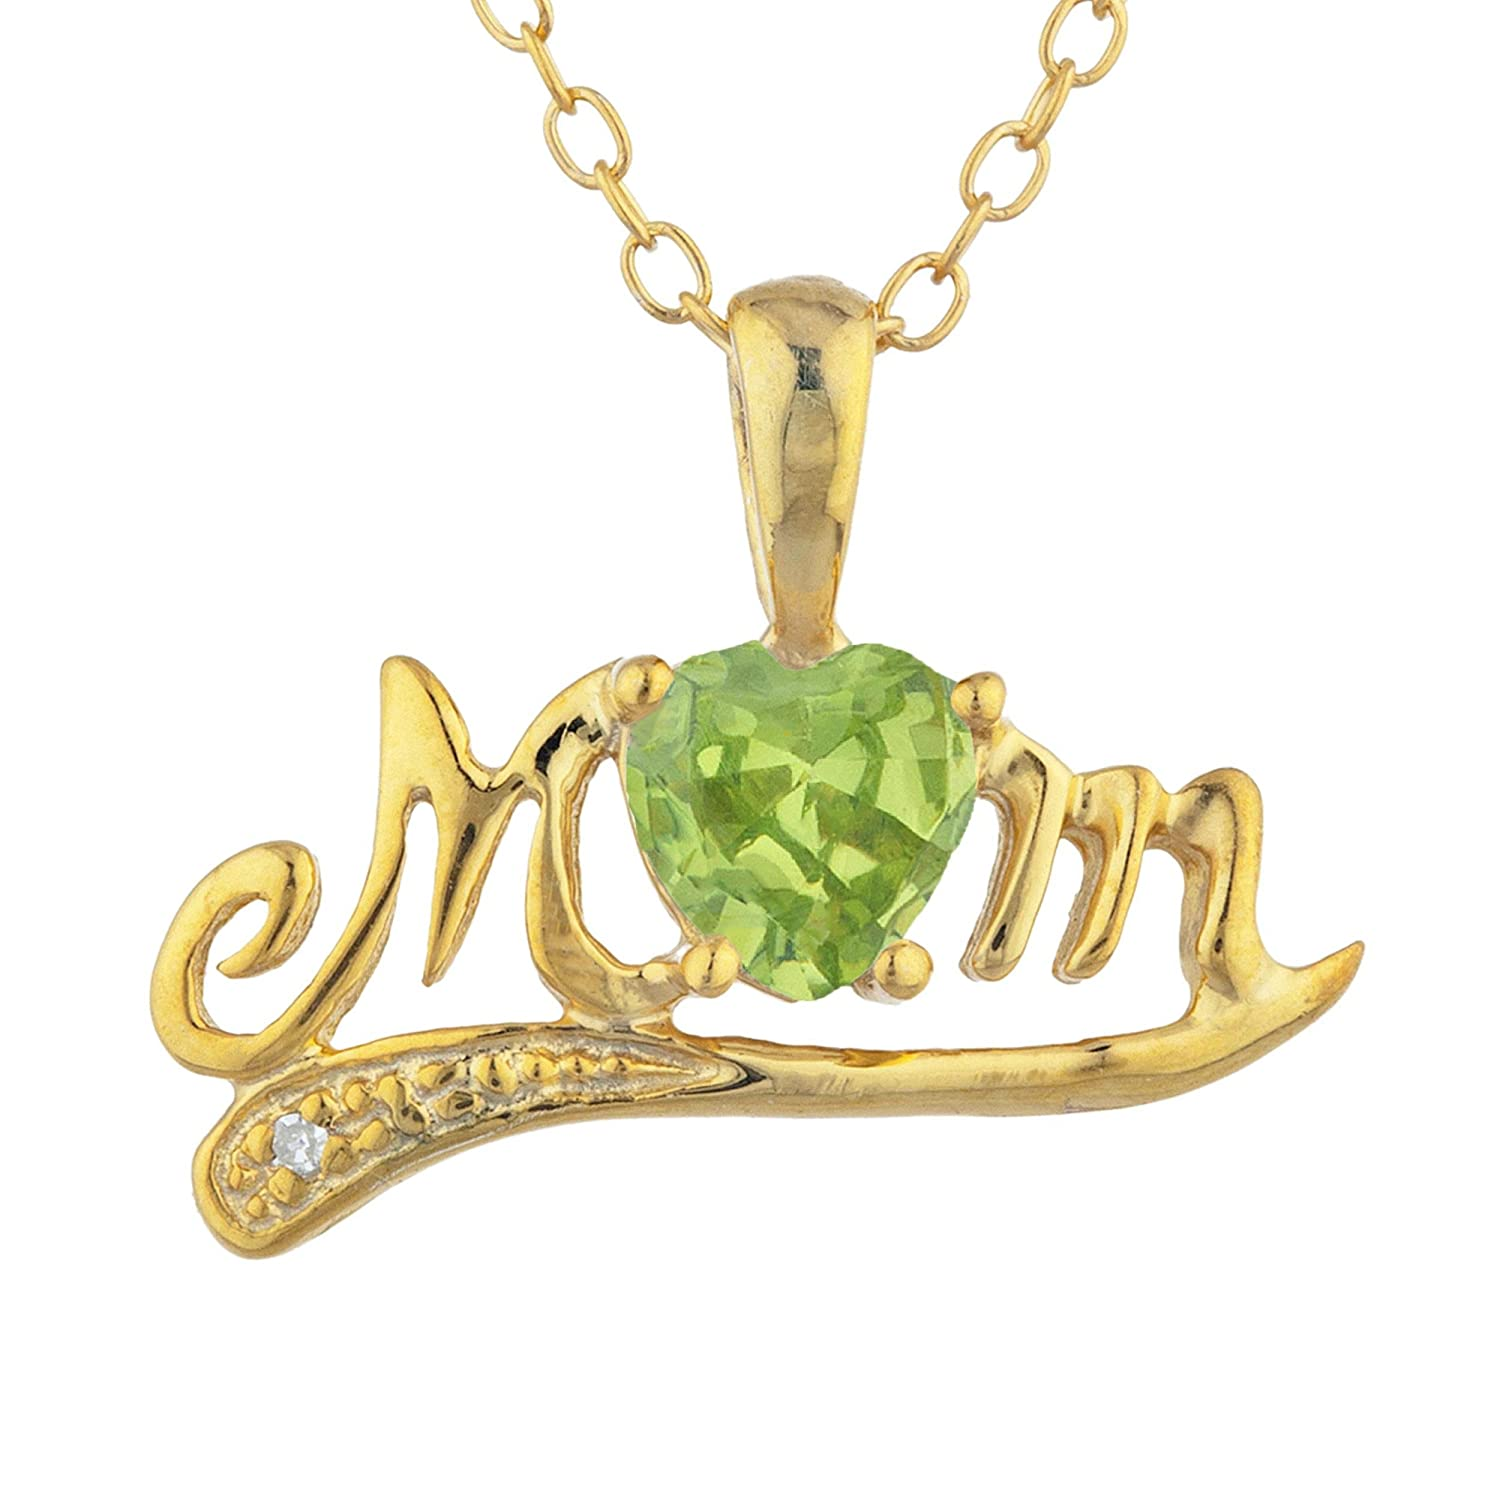 Tennis Simulated Peridot & Diamond Heart Mom Bracelet 14Kt Yellow Gold Plated Over .925 Sterling Silver